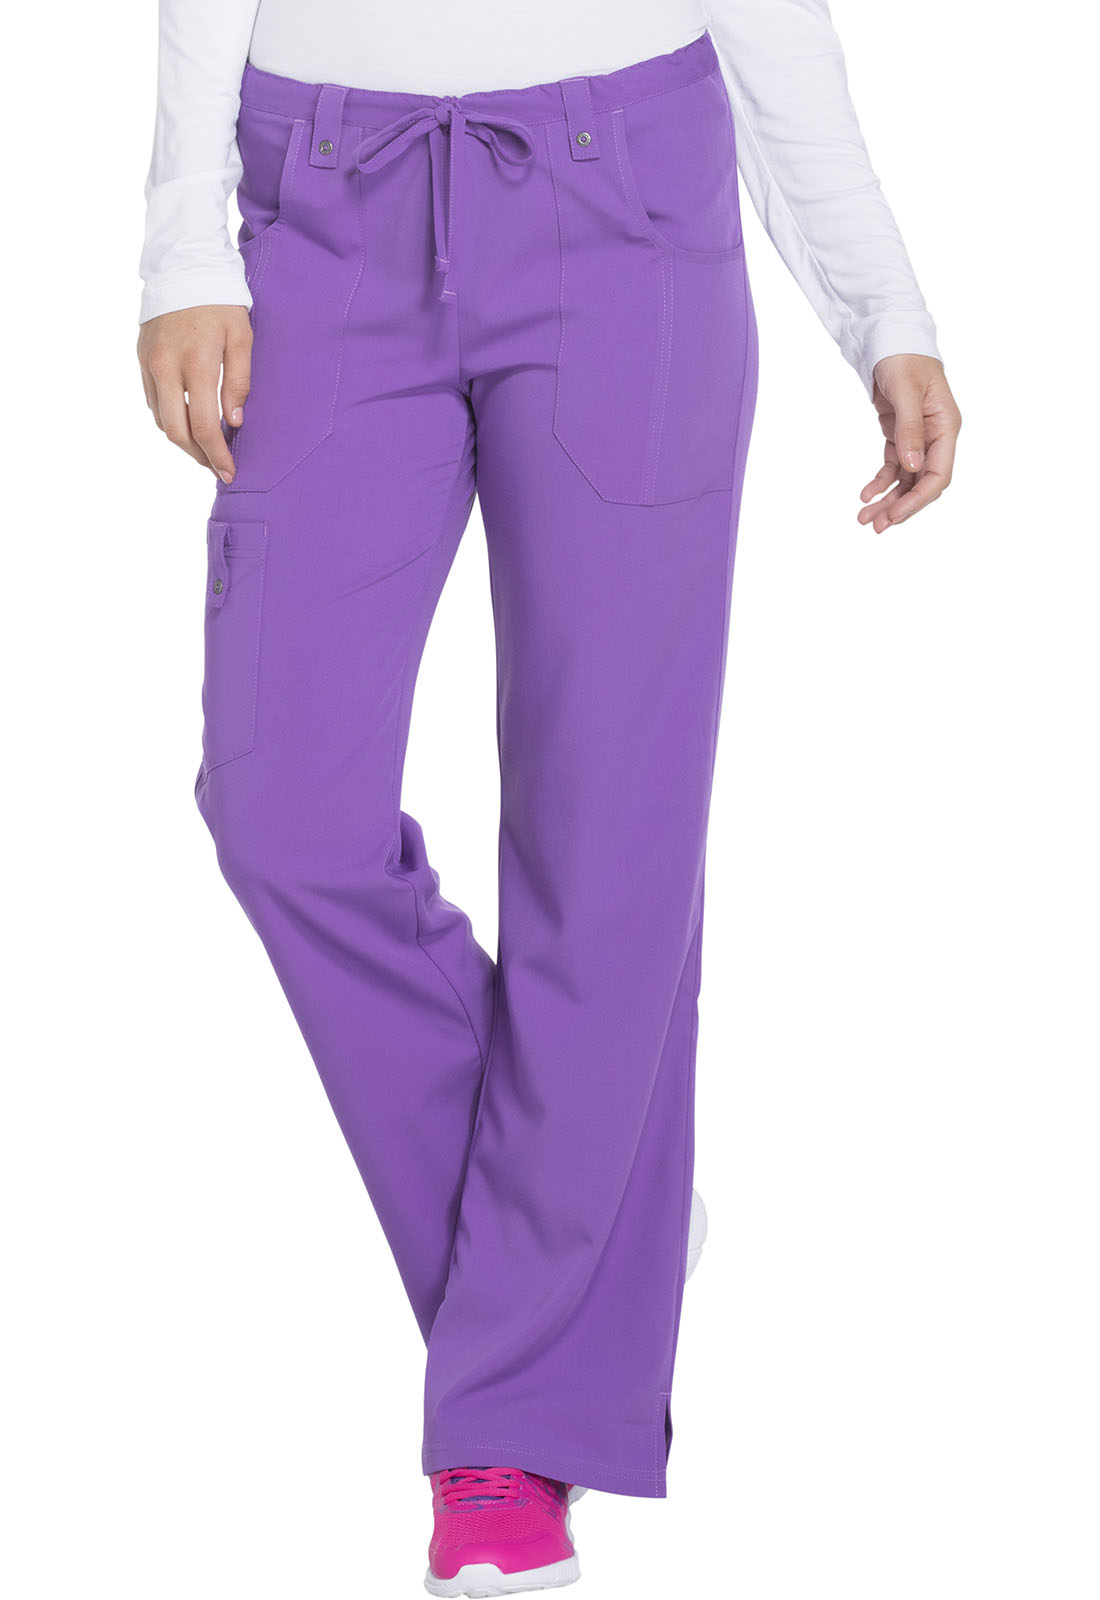 61abacff3f8 Xtreme Stretch Mid Rise Drawstring Cargo Pant in Purplicious 82011 ...